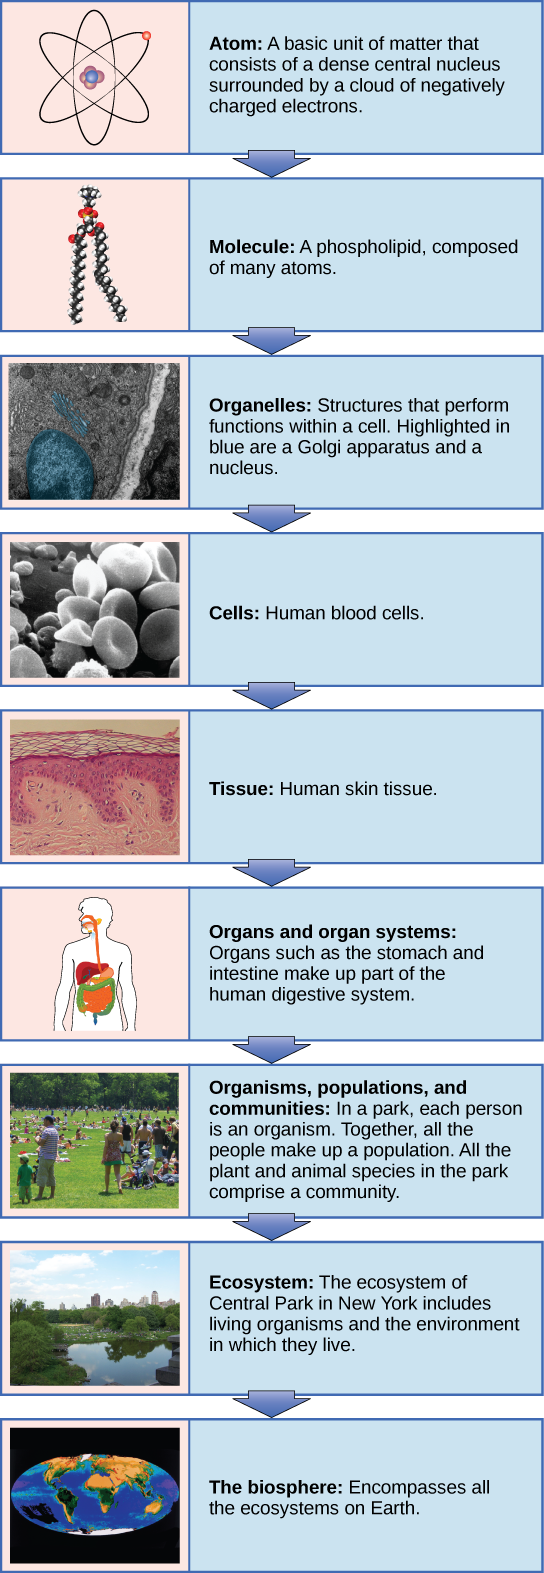 Vertical Chart showing the levels of organization of living things. Starts with an atom, then molecule, cell, organelle, tissue, organ and organ system, then organisms, populations & communities, to ecosystem, and ending with biosphere.